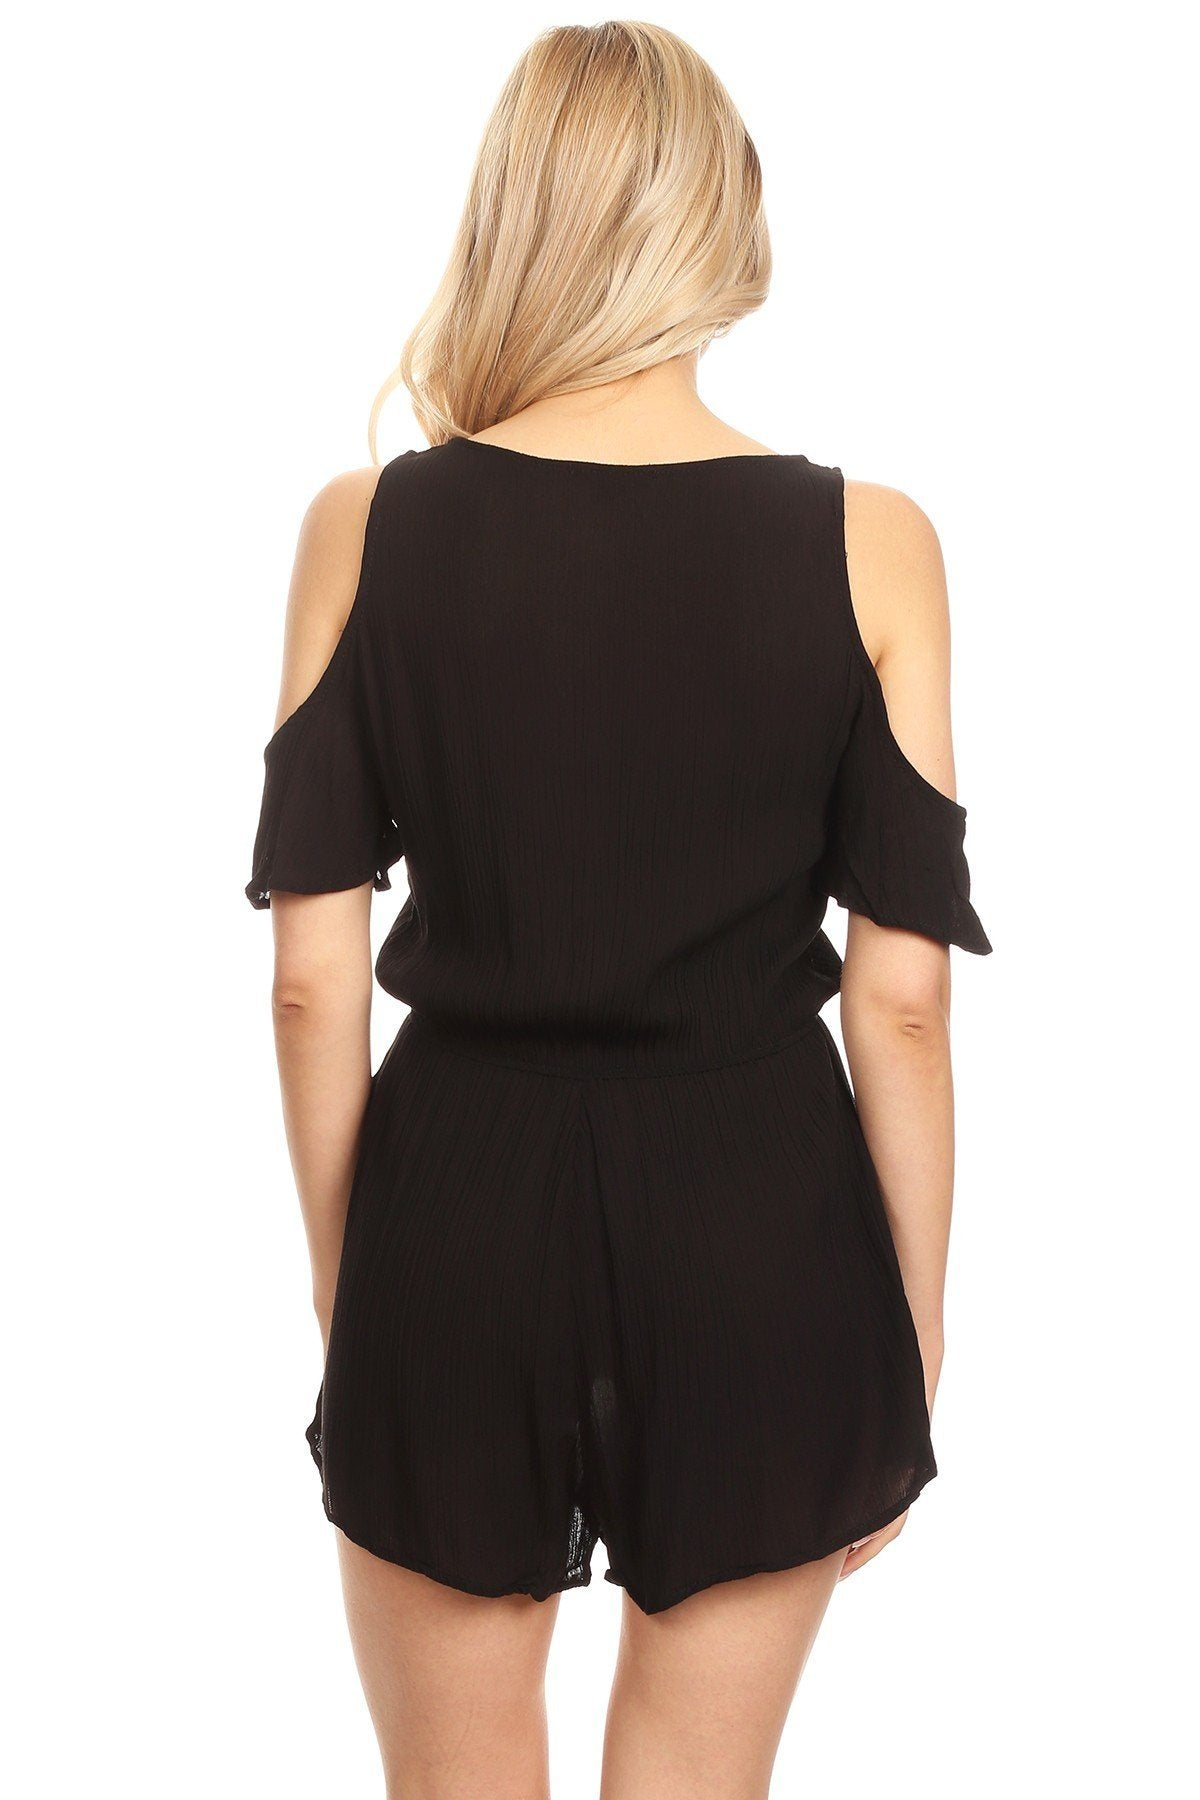 MomMe And More Women's/Juniors Cold Shoulder Romper Shorts Jumpsuit Black: S/M/L